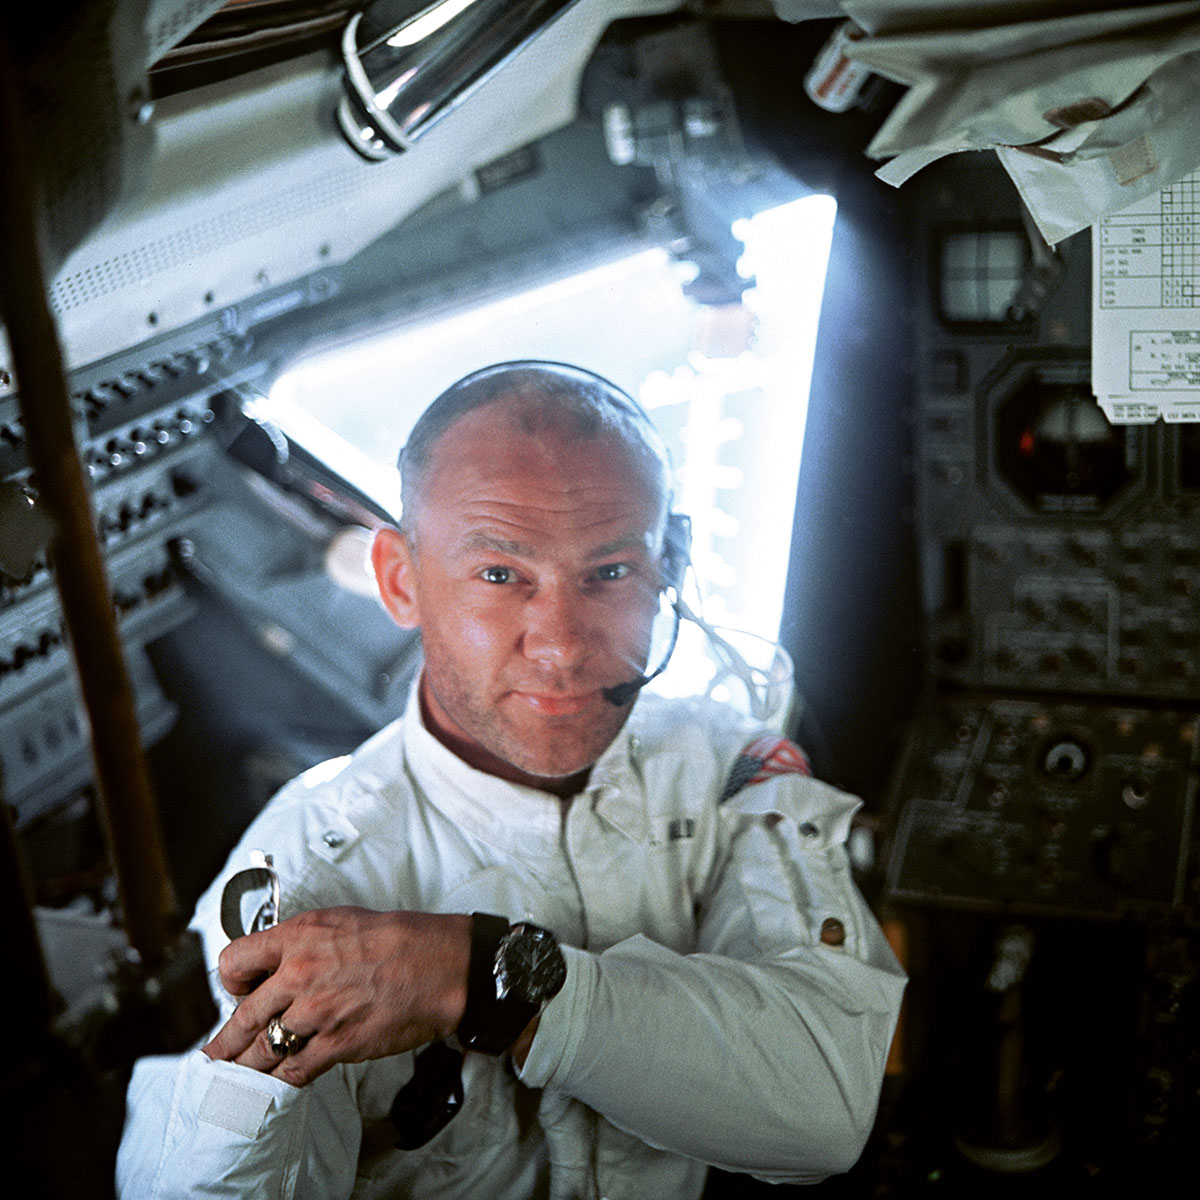 Buzz Aldrin in the cockpit of the Lunar Module, wearing his OMEGA Speedmaster